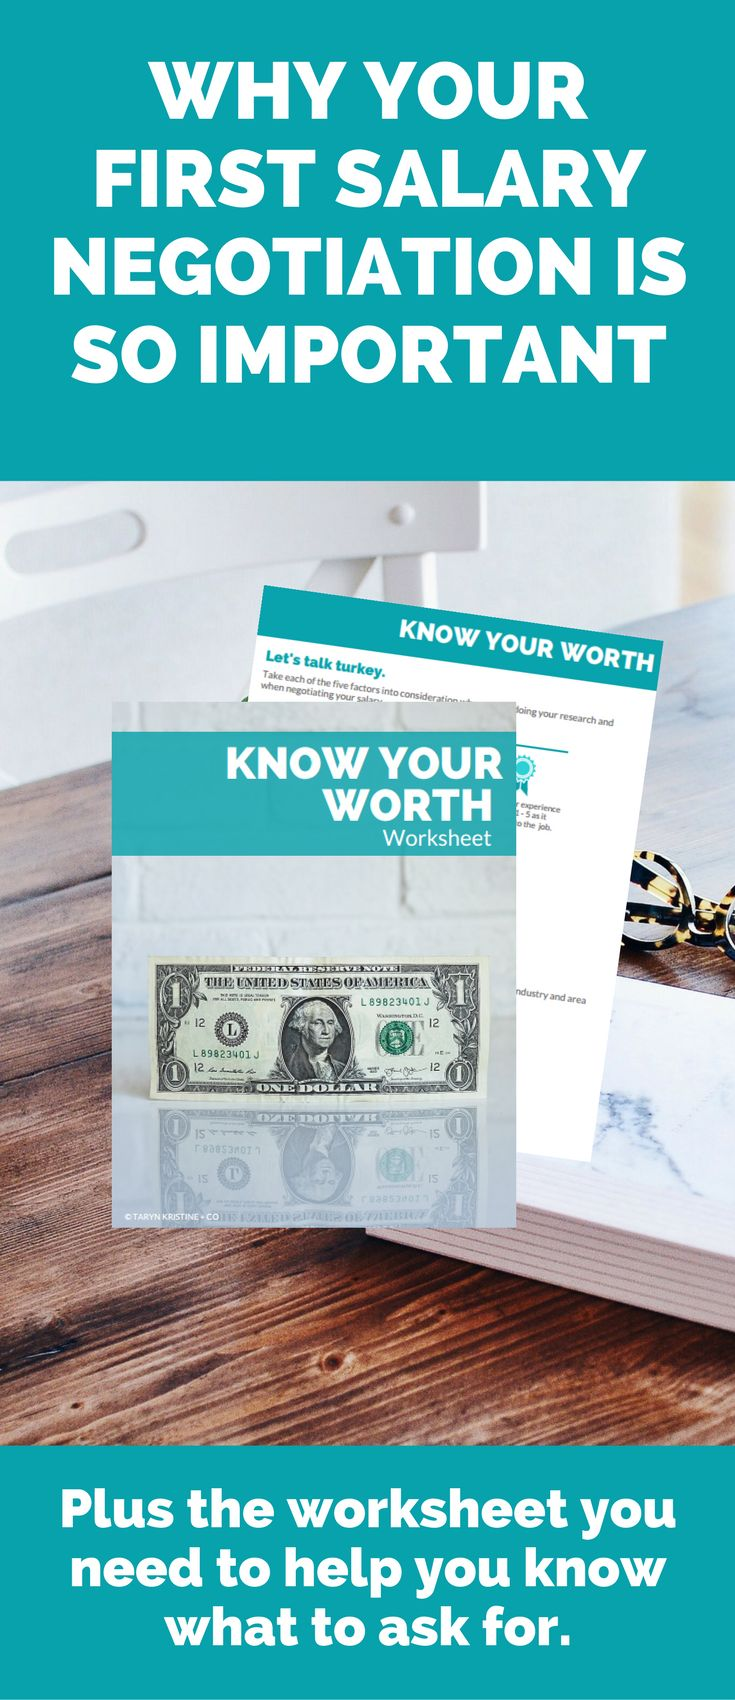 Career Tips | Job Search Tips | Negotiation Tips | Salary Negotiation | Salary Tips | Negotiating Salary | Career Advice | Money | Finance Tips | Careers | Jobs | Budget Tips | Bugeting | Adulting | Printable | Worksheet | Money Advice